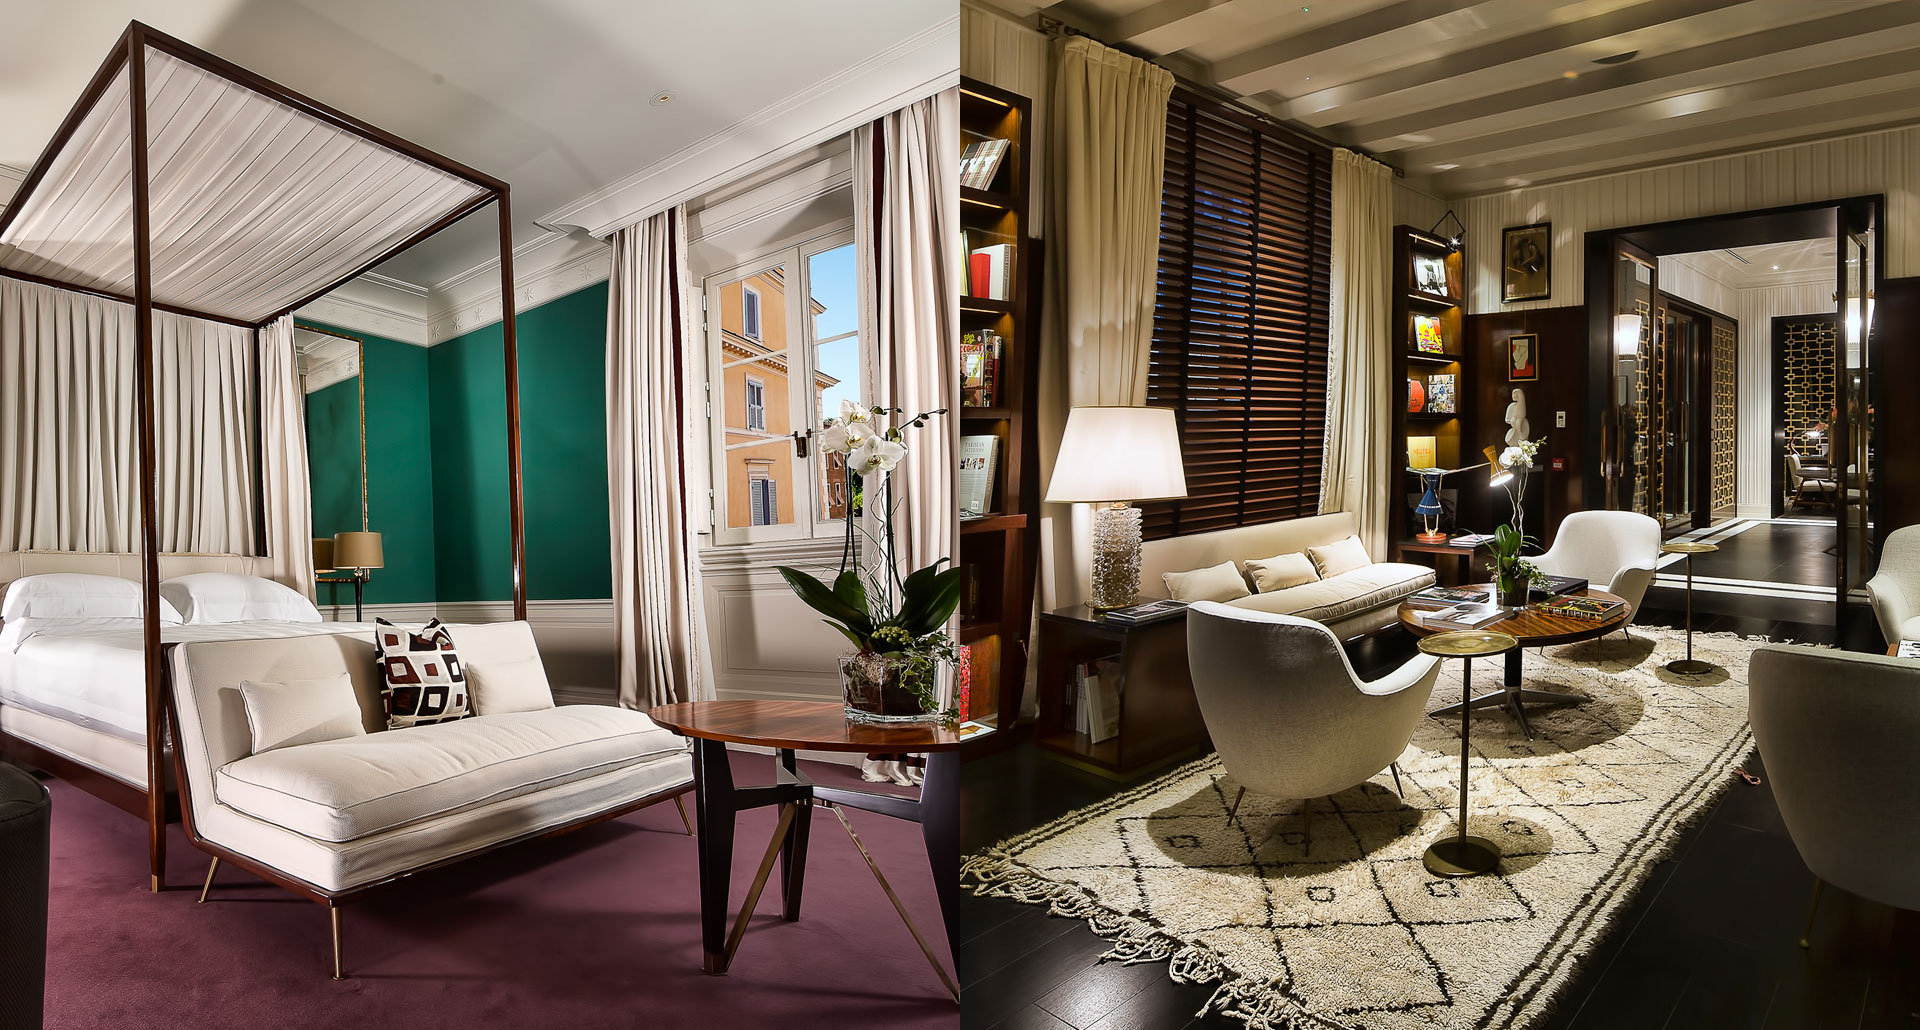 JK Place Roma - romantic boutique hotel in Rome, Italy